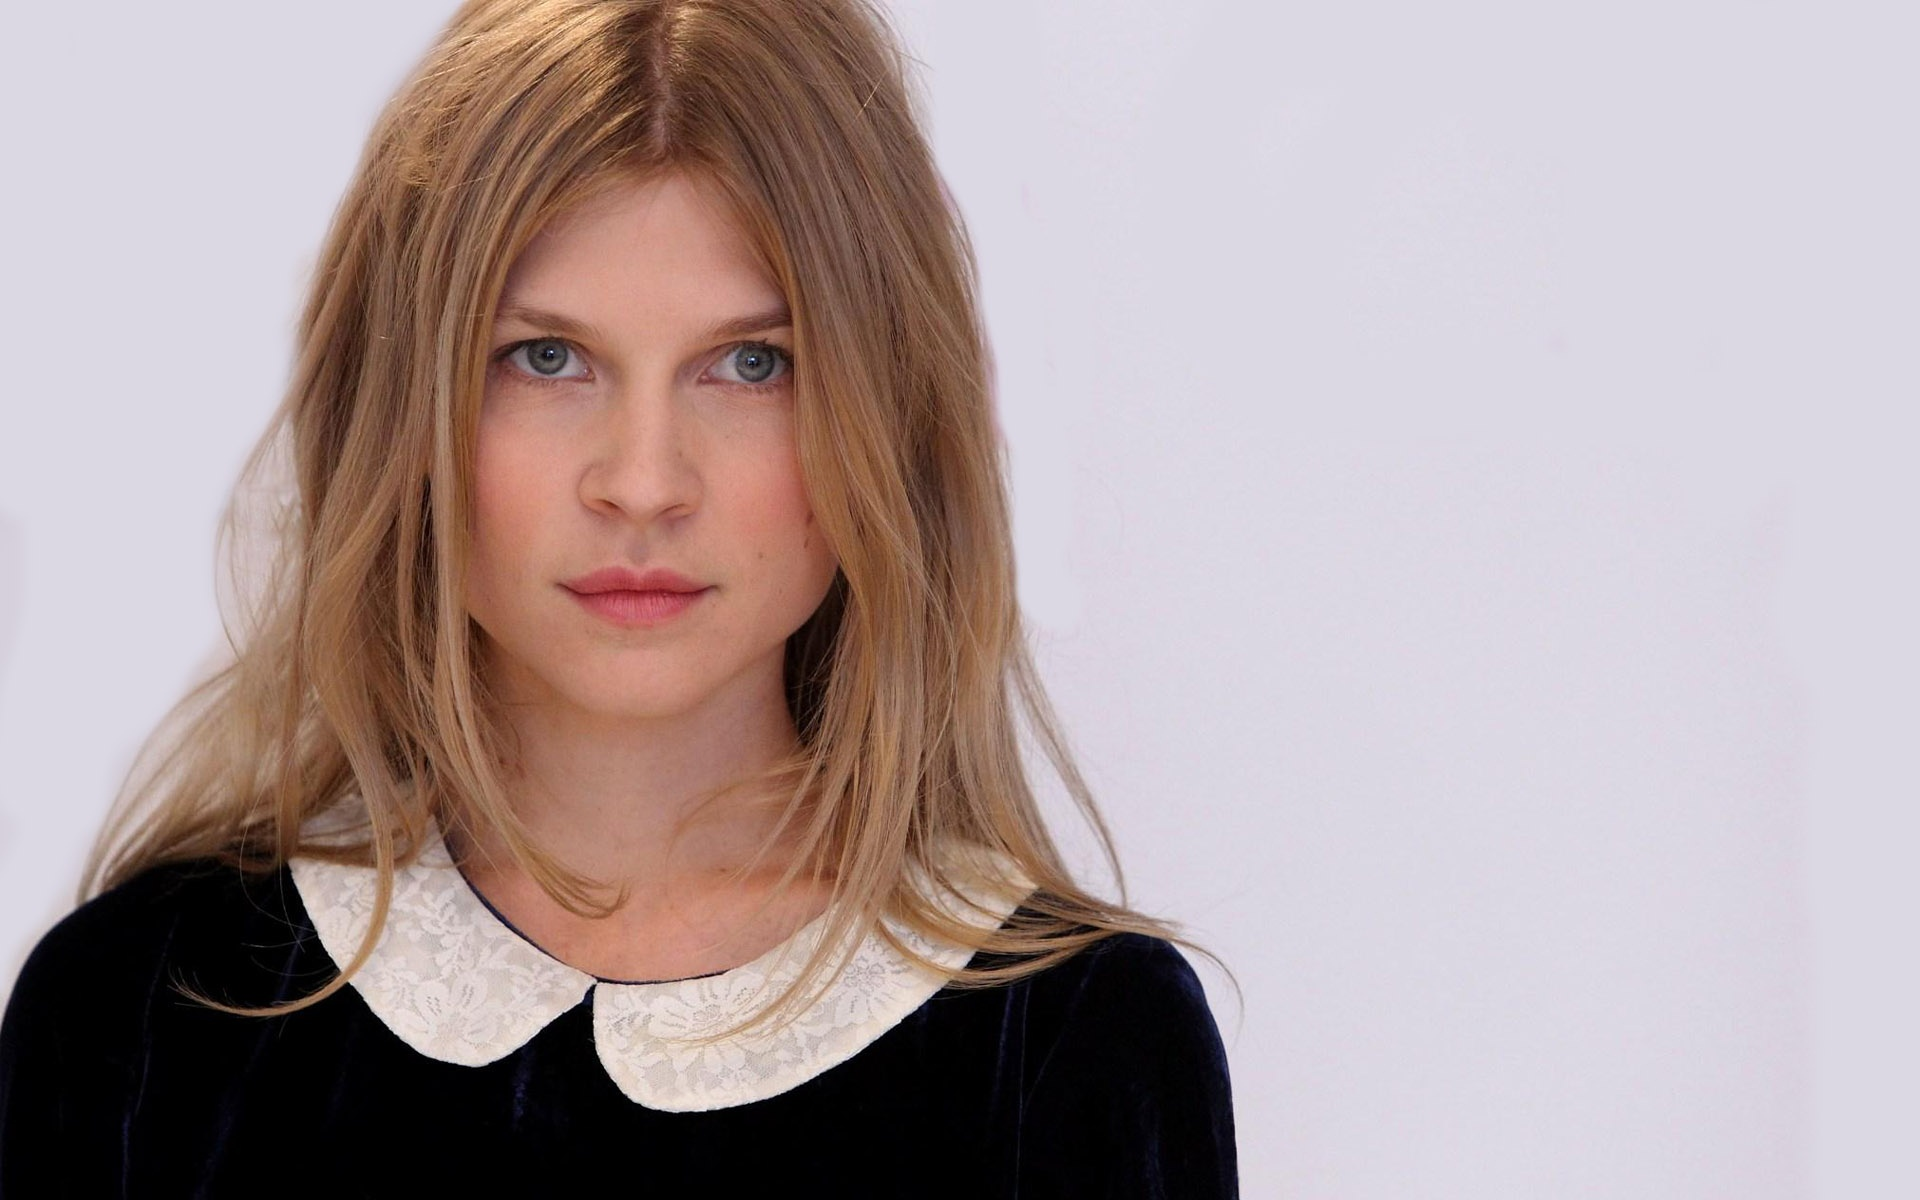 1920x1200 - Clemence Poesy Wallpapers 11